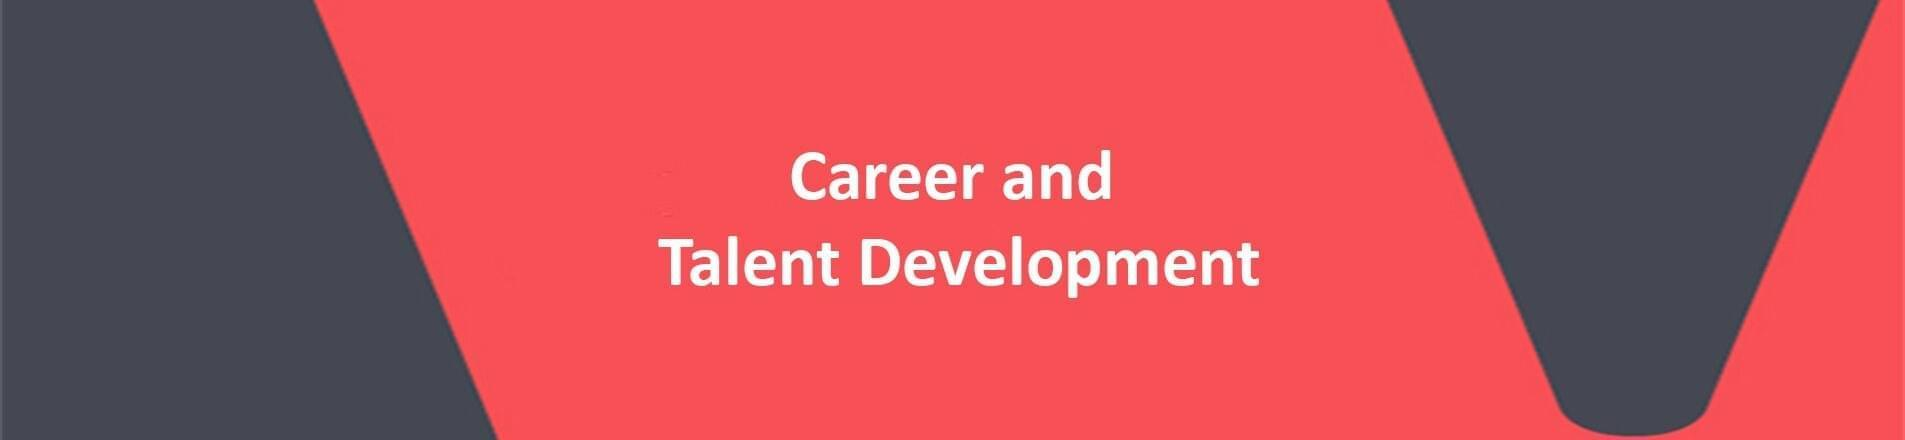 Career and Talent Development on red VERCIDA background